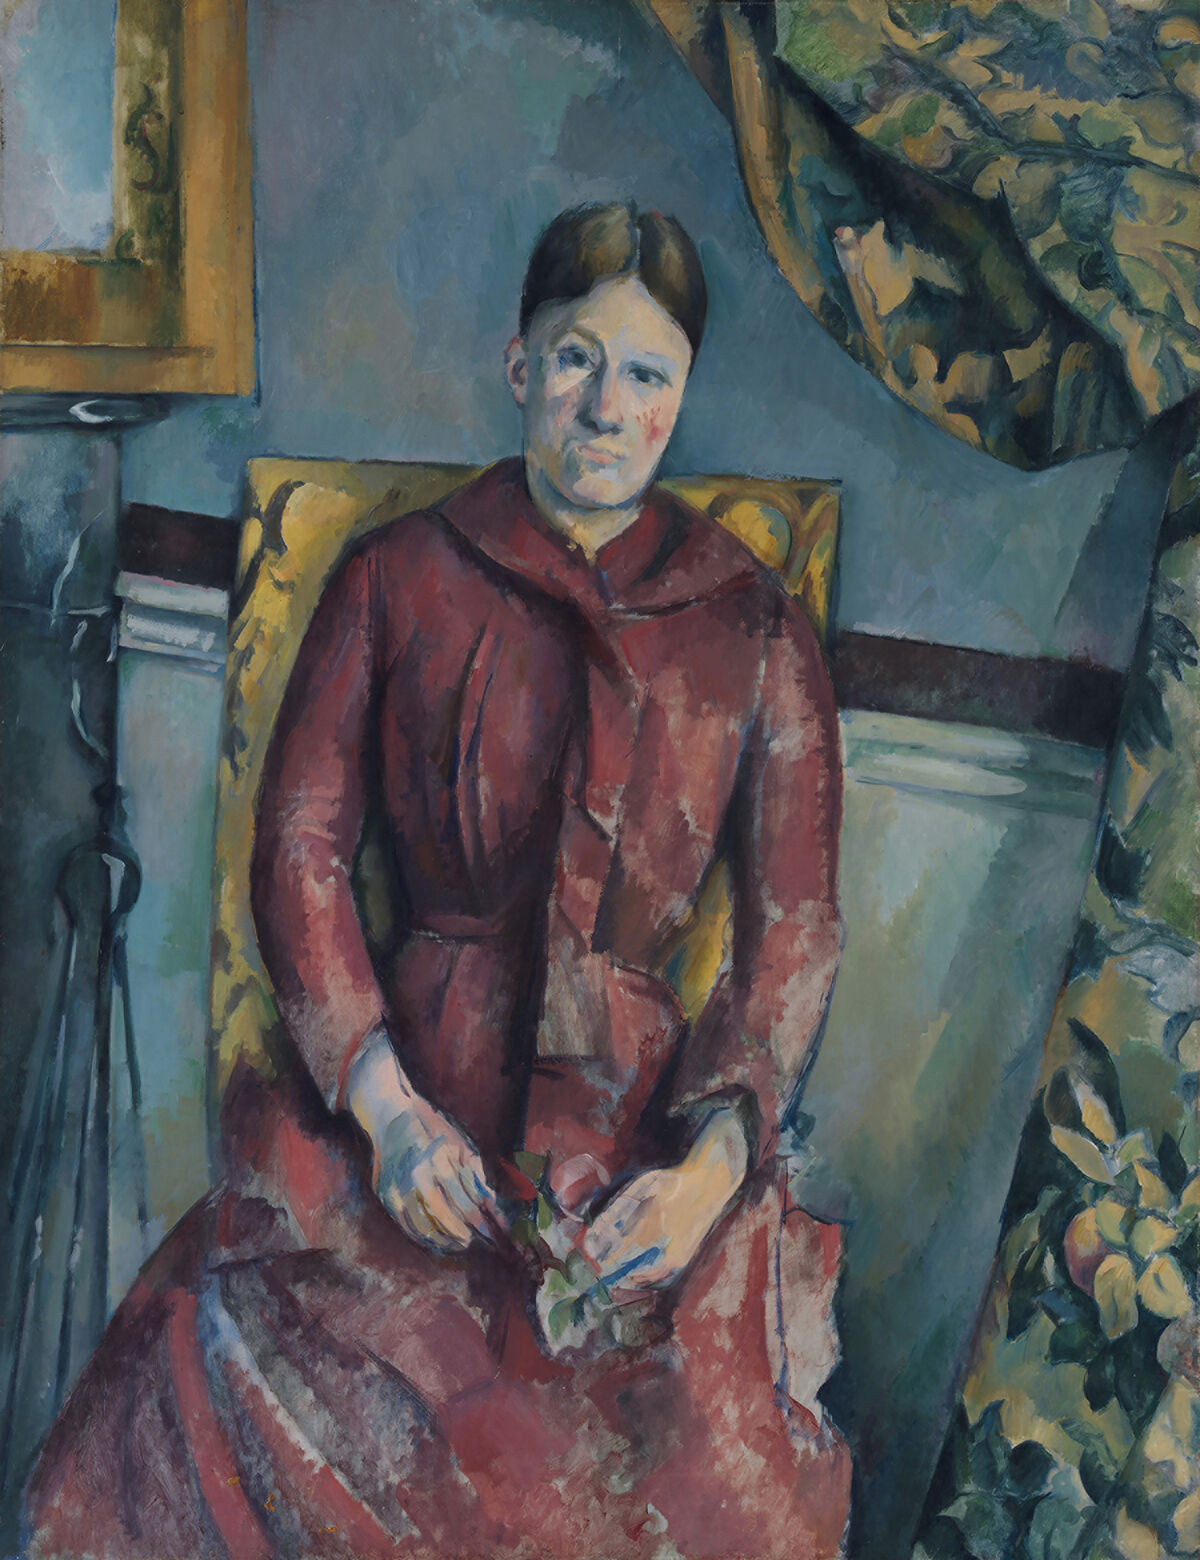 Paul Cézanne, Madame Cézanne in a Red Dress, c. 1888 - 1890. Courtesy of the National Gallery of Art.